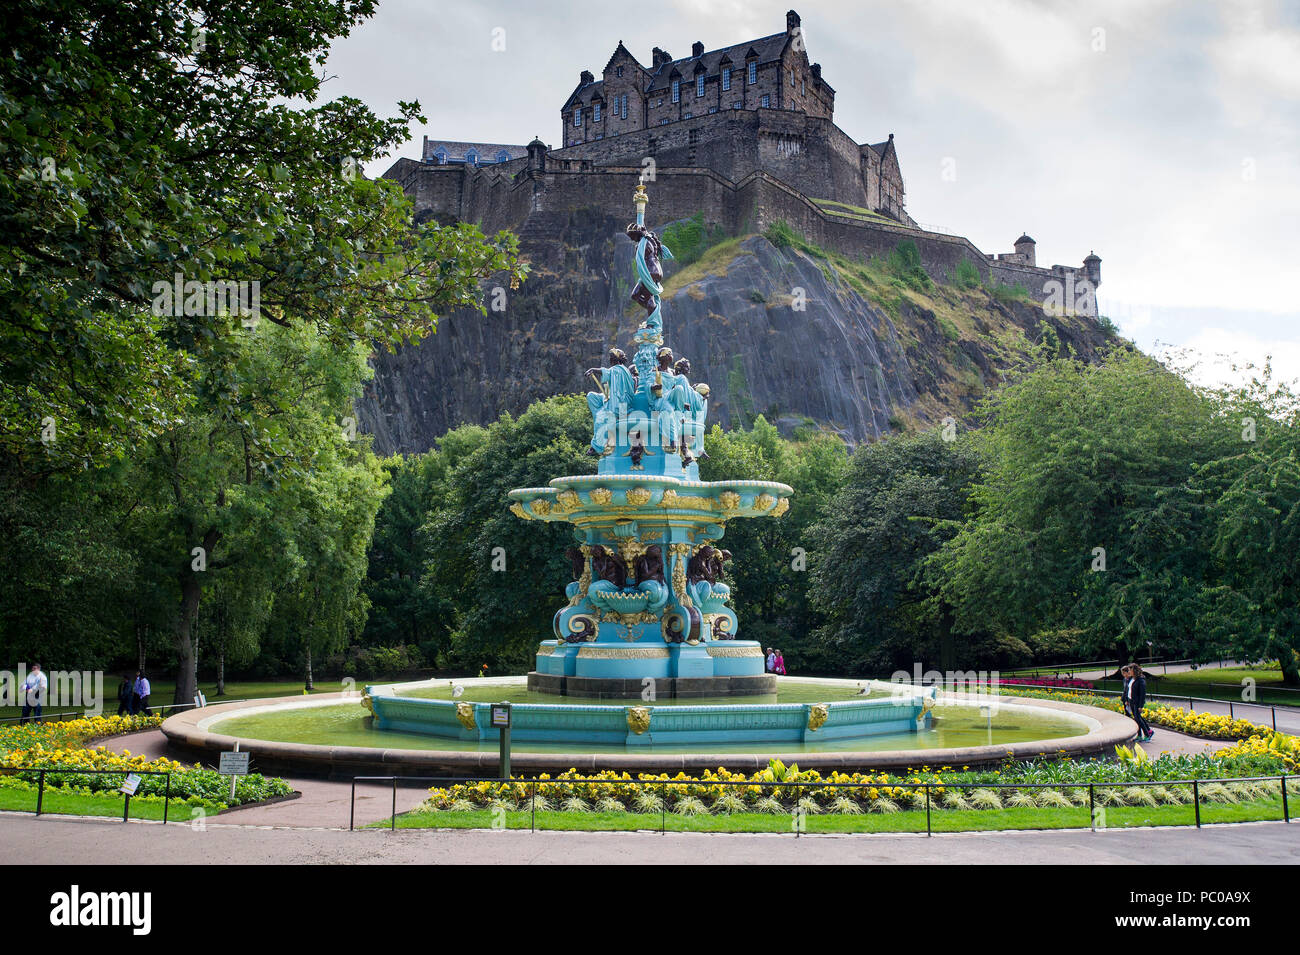 The newly refurbished Ross Fountain in West Princes Street Gardens, Edinburgh, Scotland, UK - Stock Image